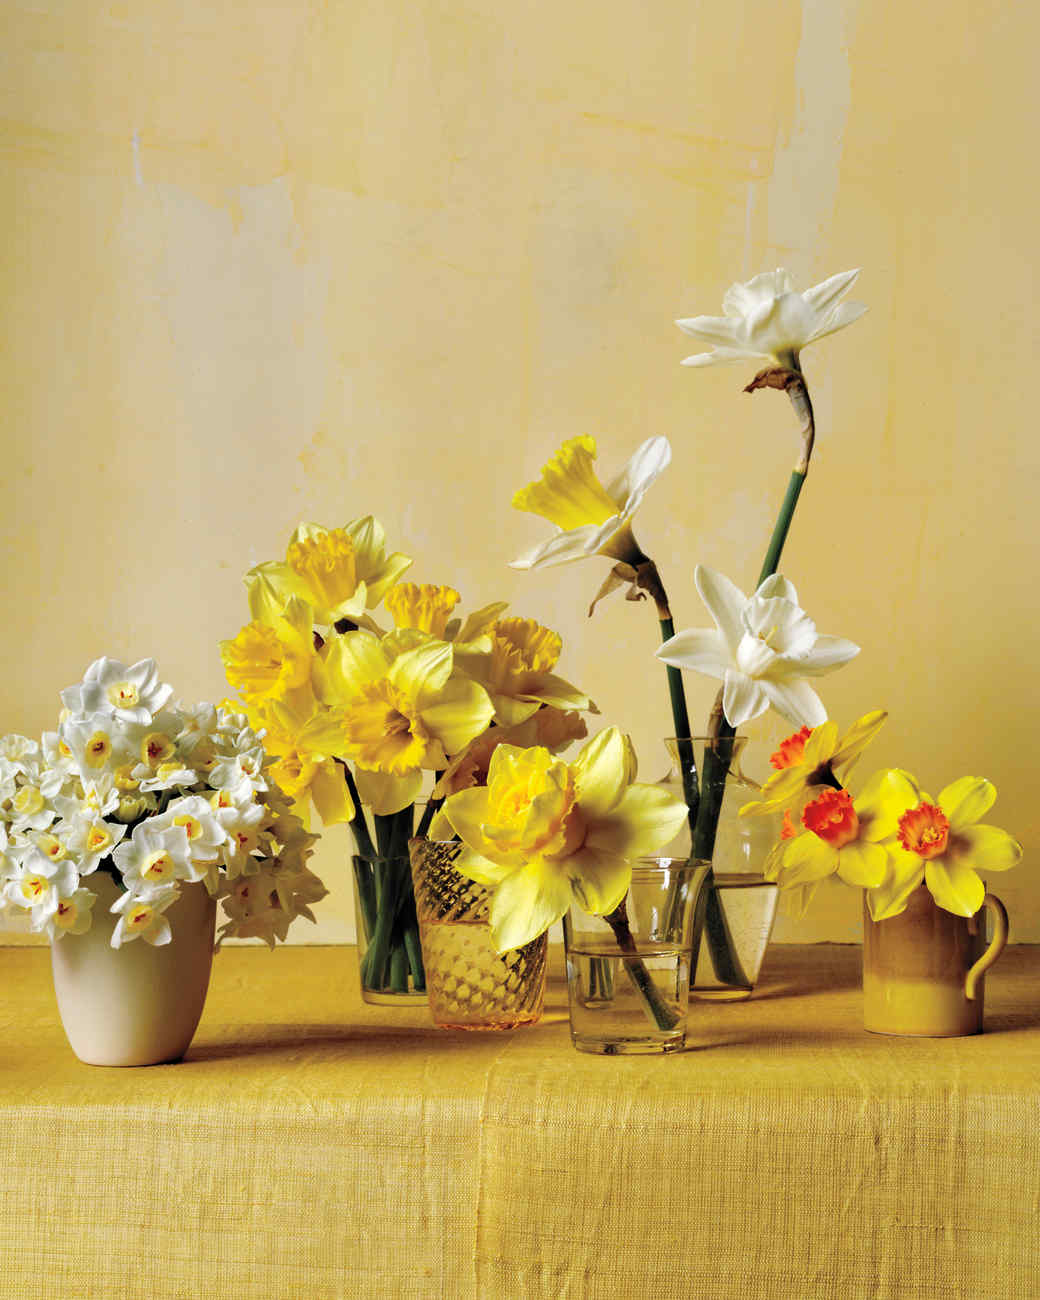 daffodil-flower-arrangement-v3-n-comp-d111001.jpg